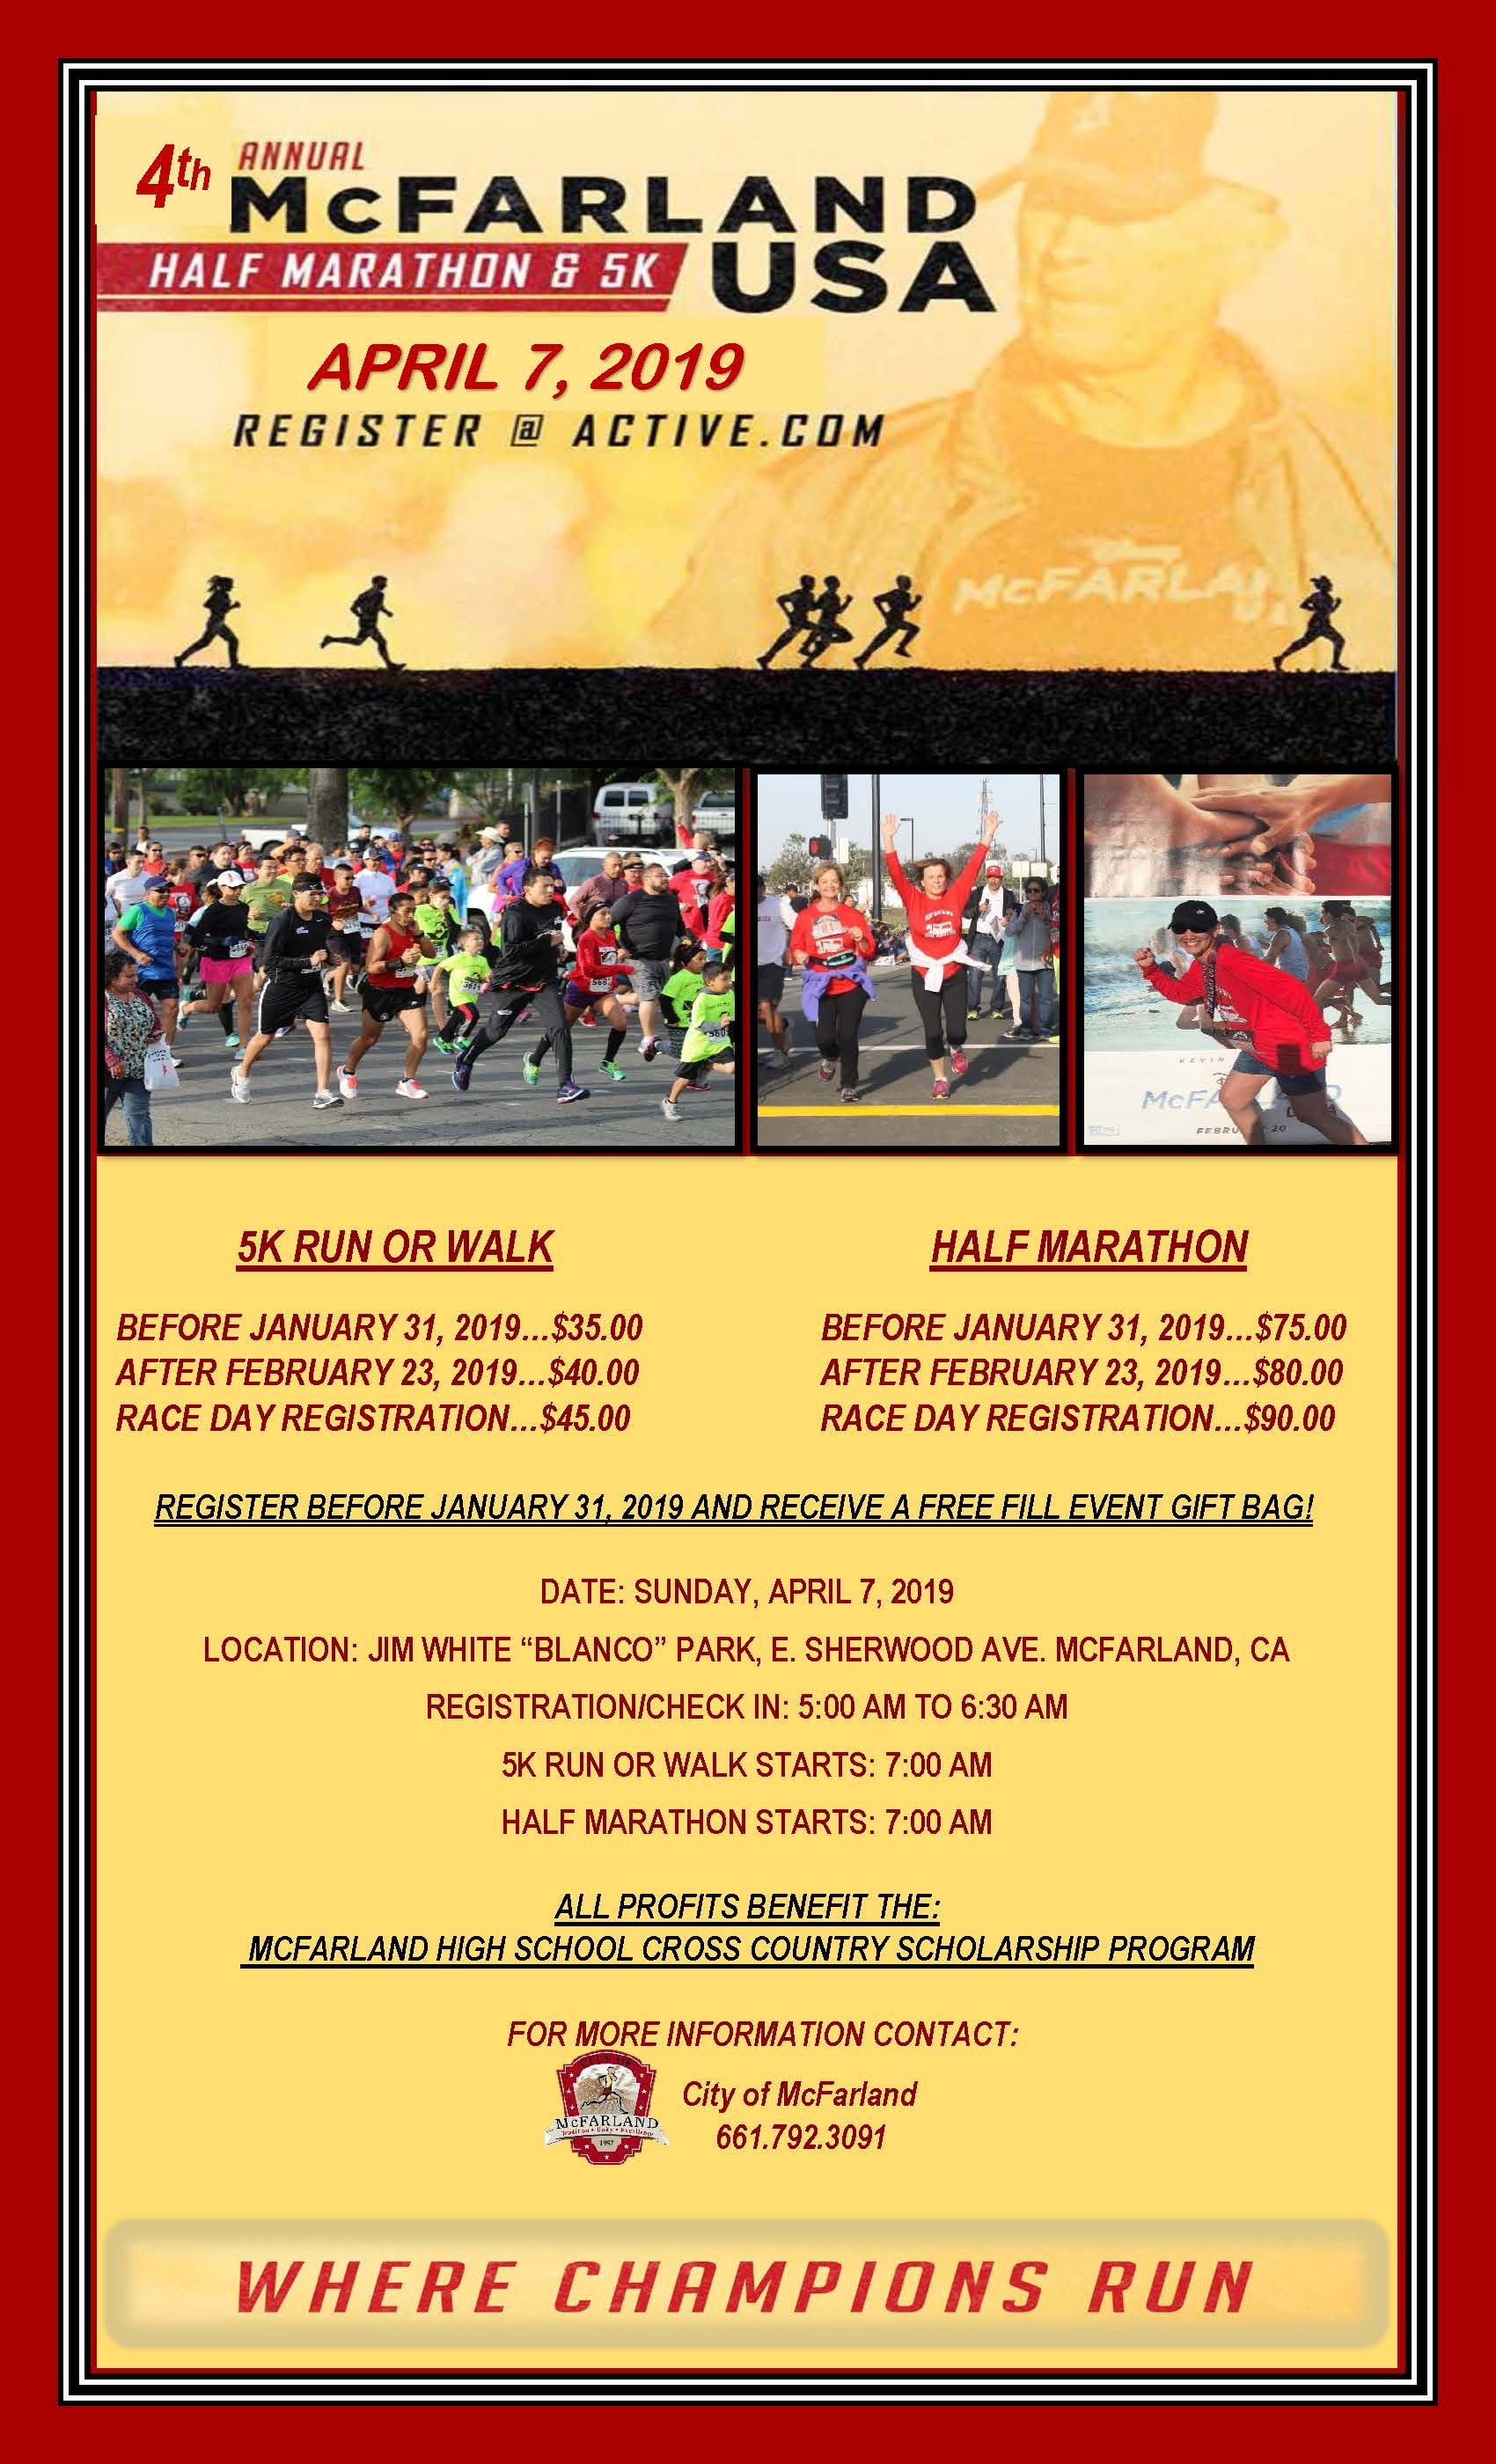 4th Annual Marathon Poster